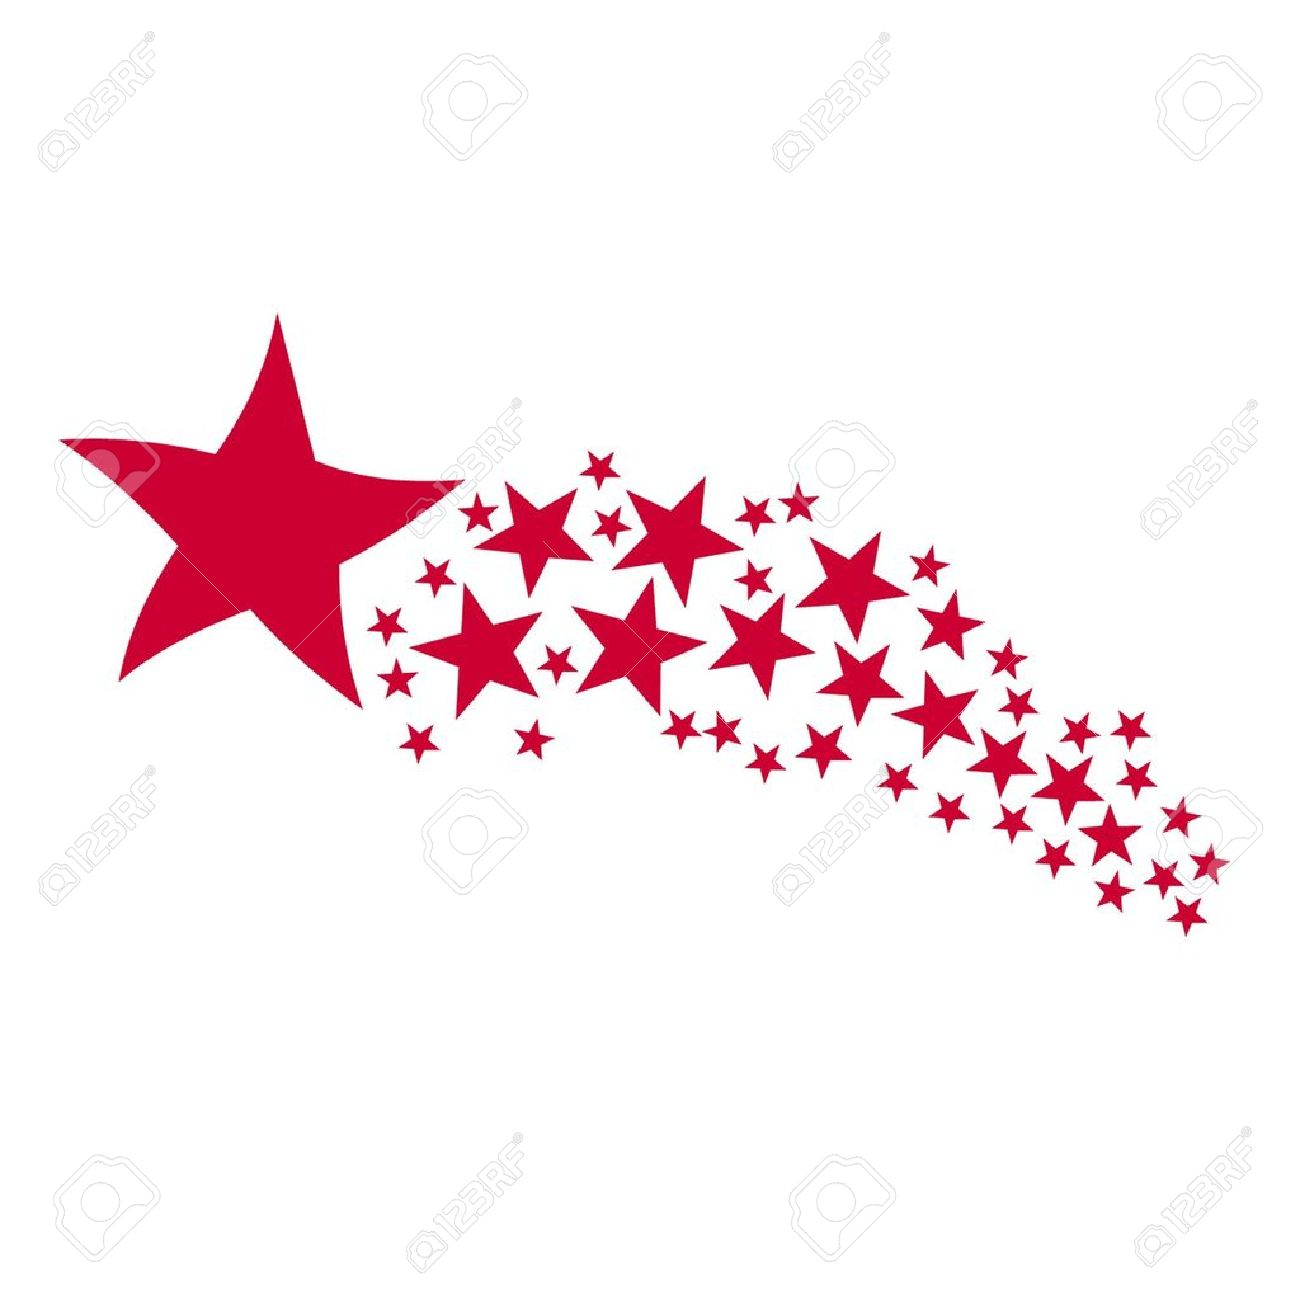 Free clipart shooting star.